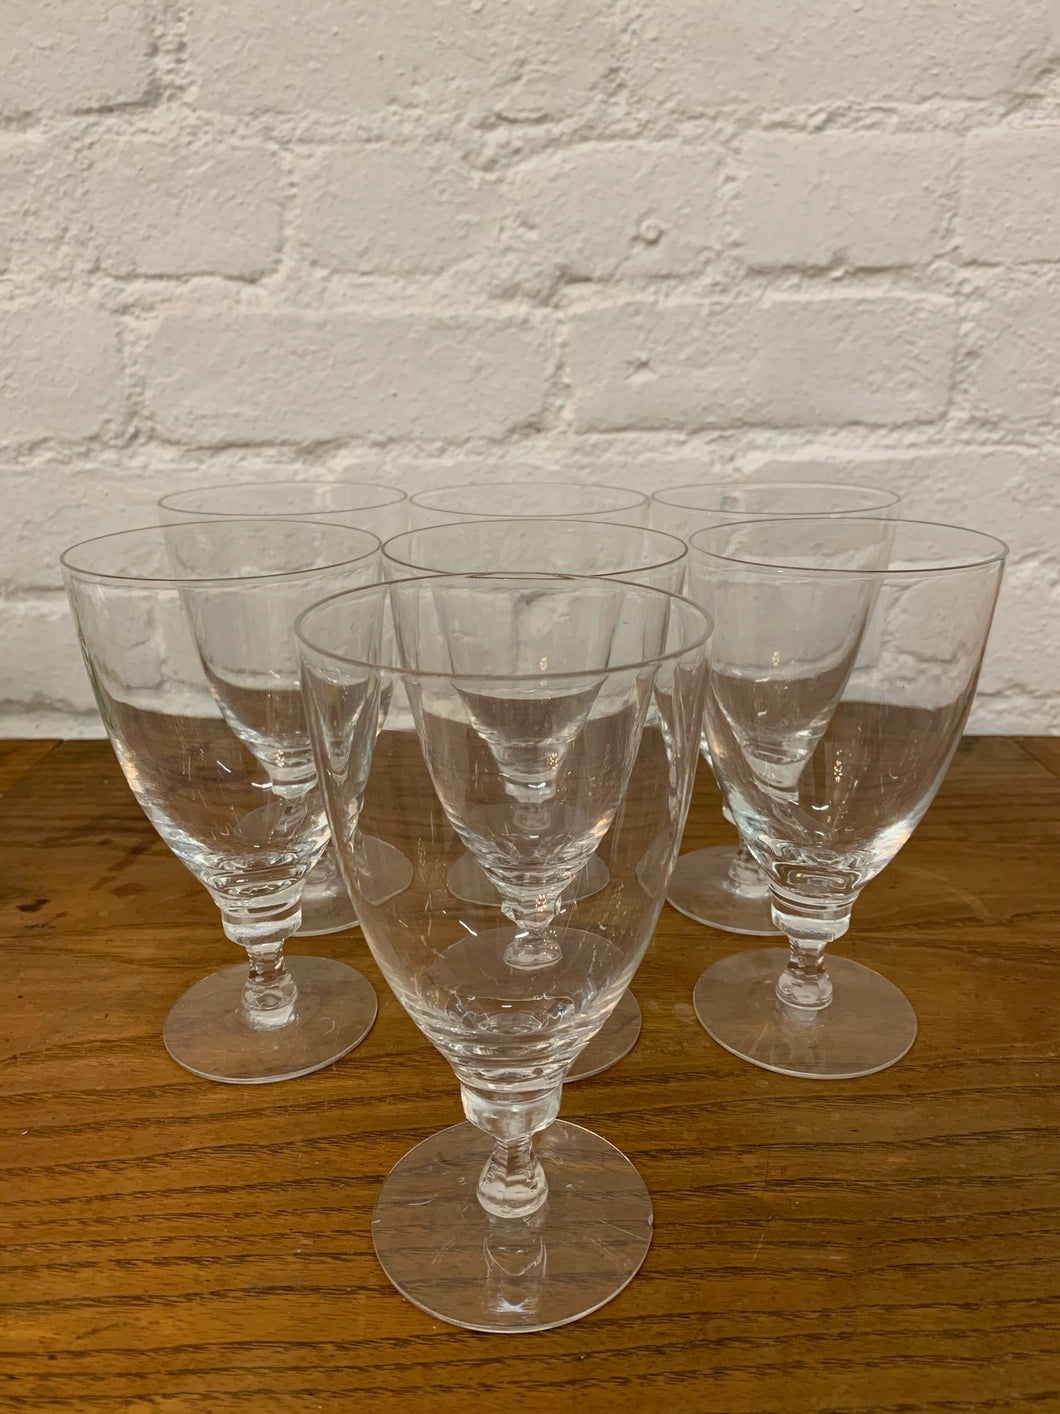 Dessert Glasses - Set of 7